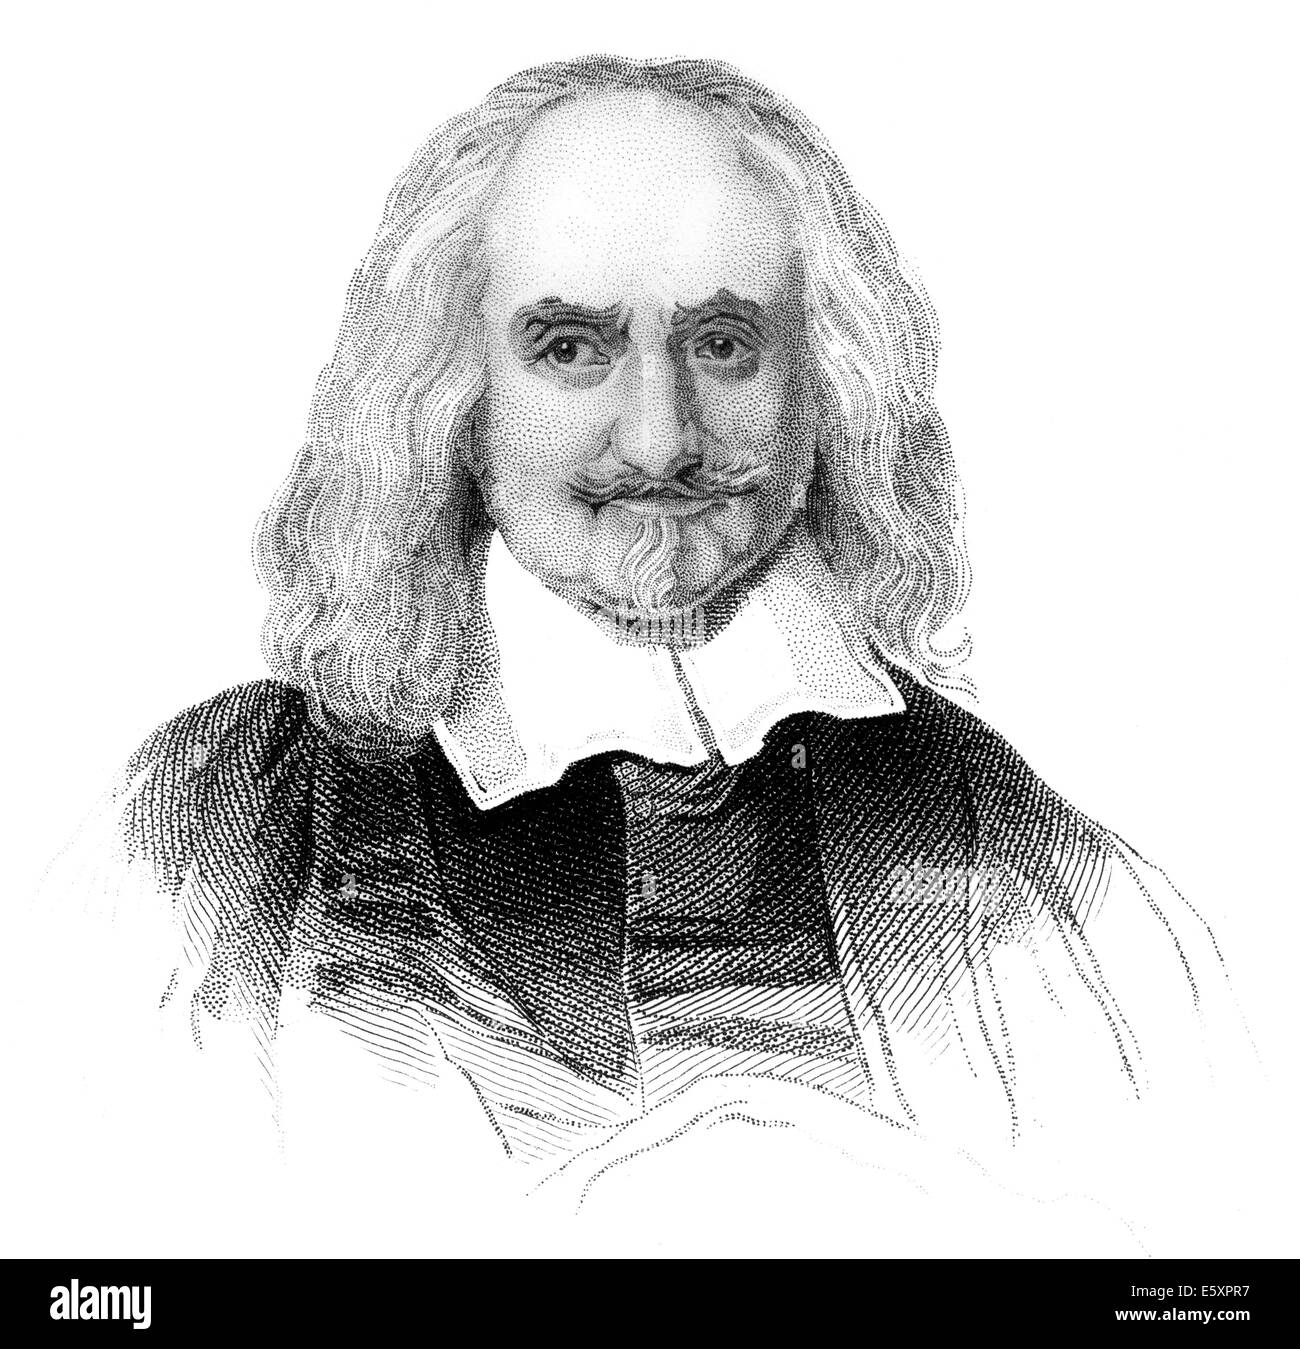 thomas hobbes Thomas hobbes (april 5, 1588–december 4, 1679) was an english philosopher, whose famous 1651 book leviathan set the agenda for much of subsequent western political.